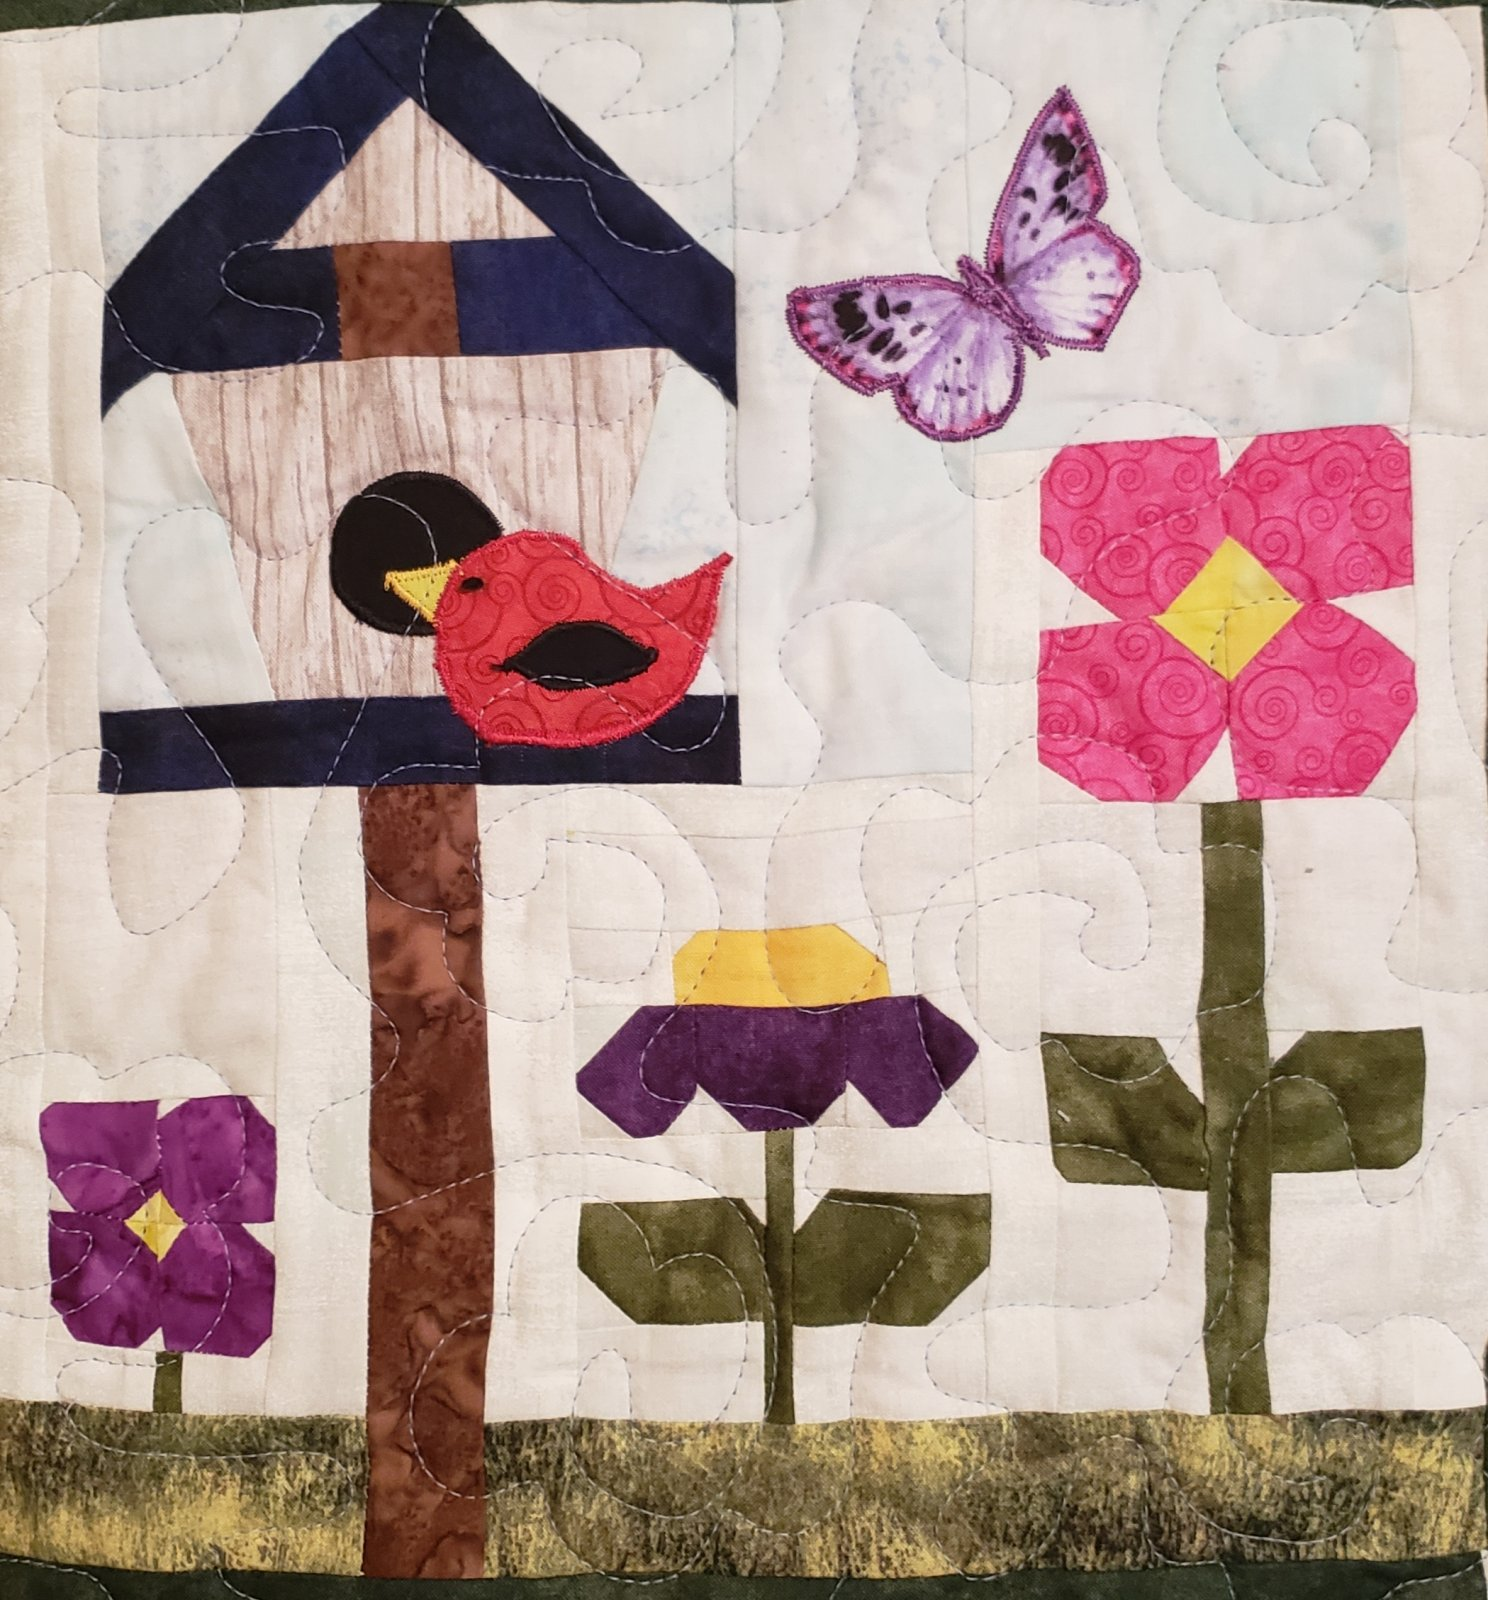 2020 garden party add on: Red Bird, Butterfly, and opening to Birdhouse